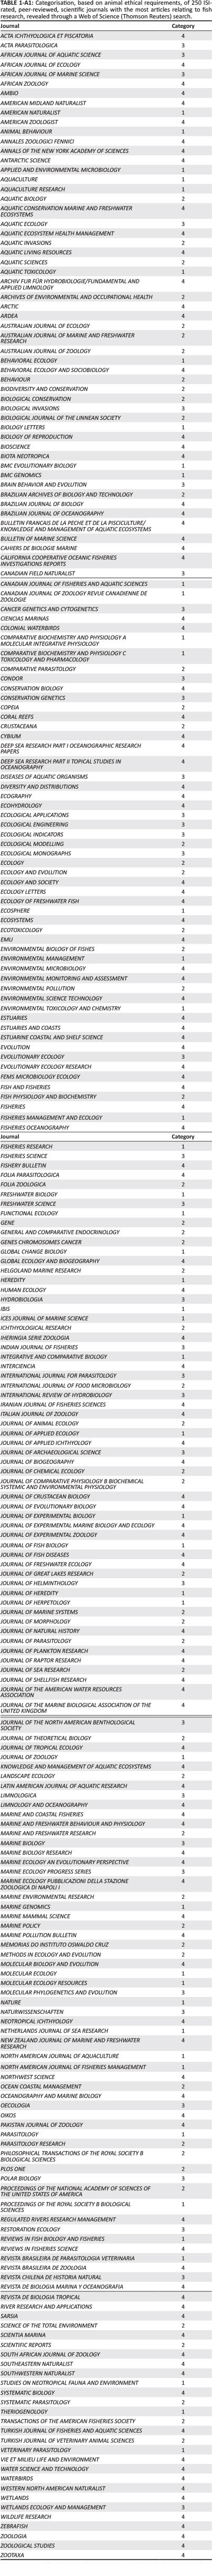 Ethical Considerations For Field Research On Fishes Caigcircuitwriterpen Click To Enlarge Brand Caig Laboratories Appendix 2 Table 1a2